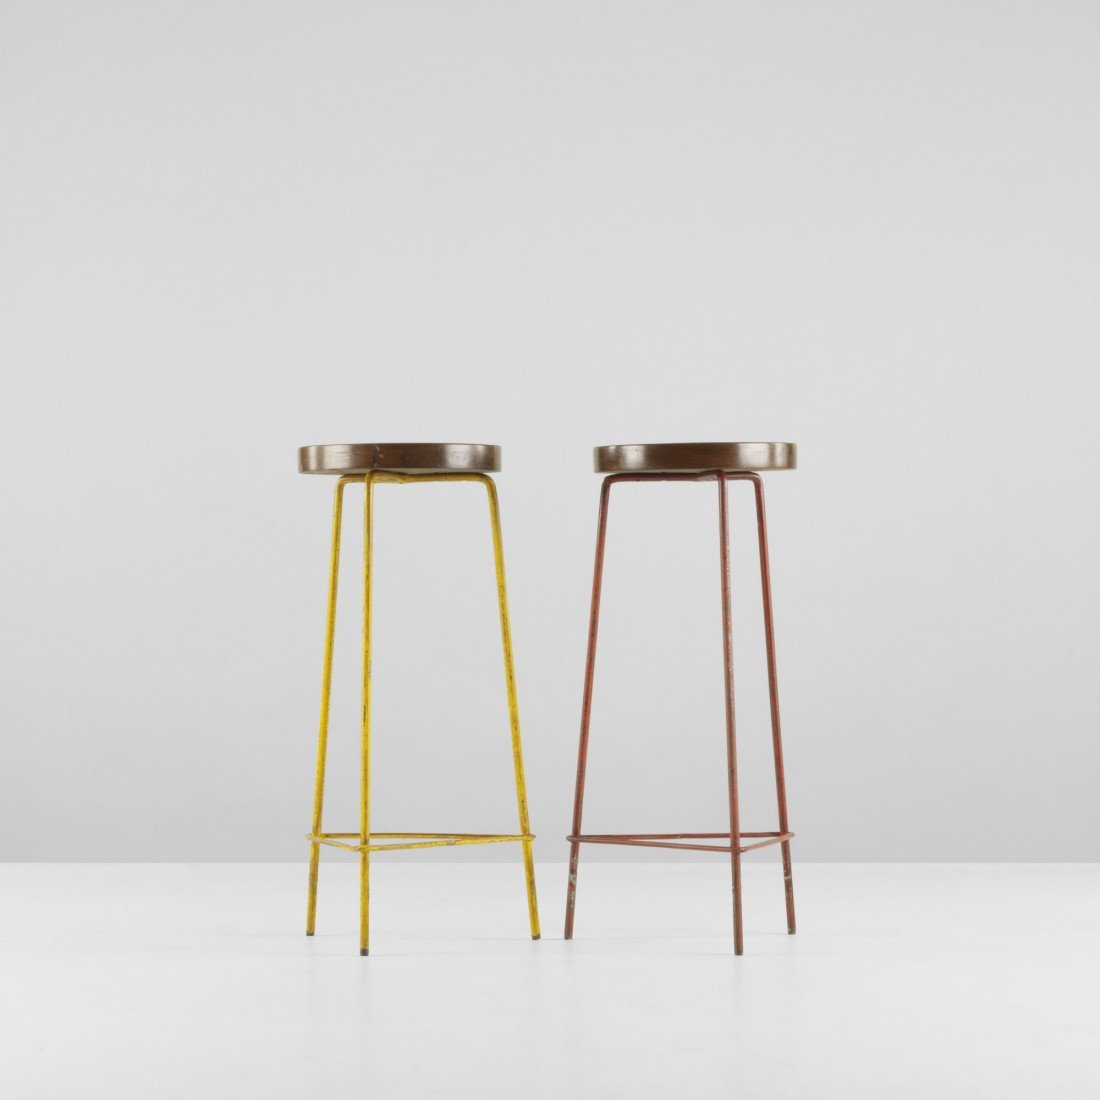 107: Pierre Jeanneret pair of stools